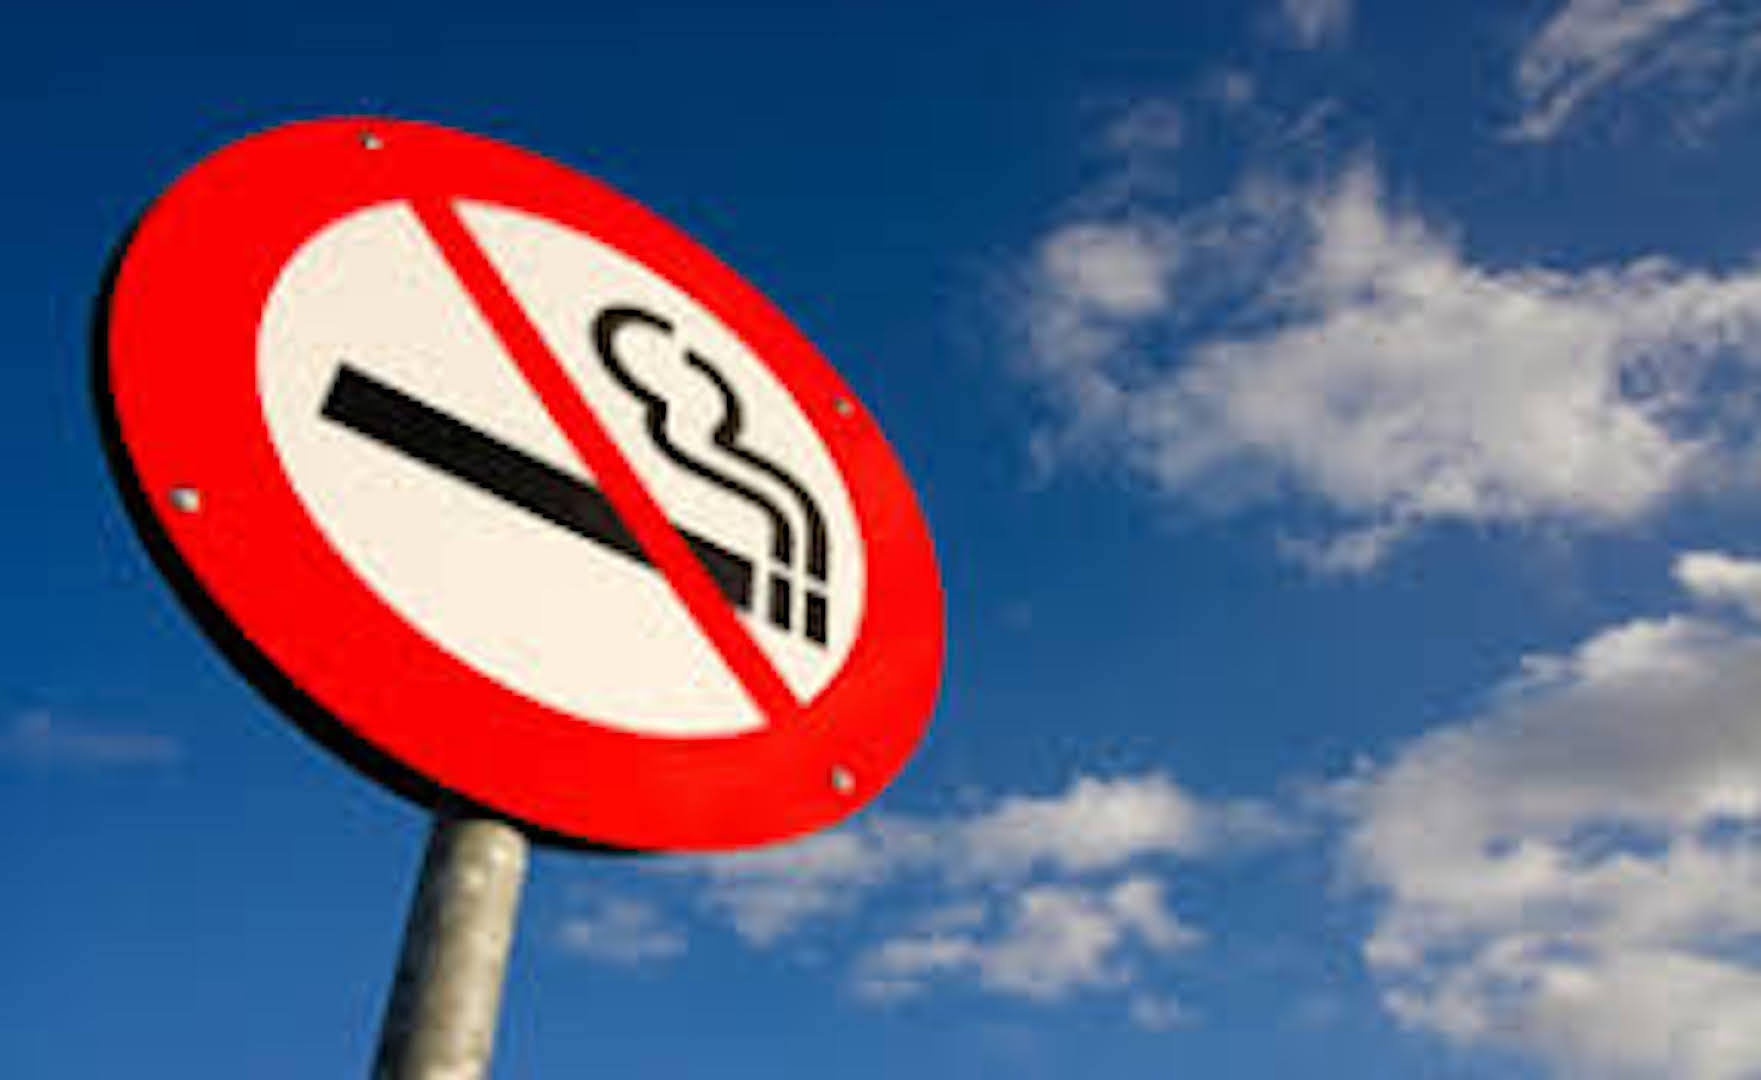 Golf courses ban smoking as heatwave takes its toll